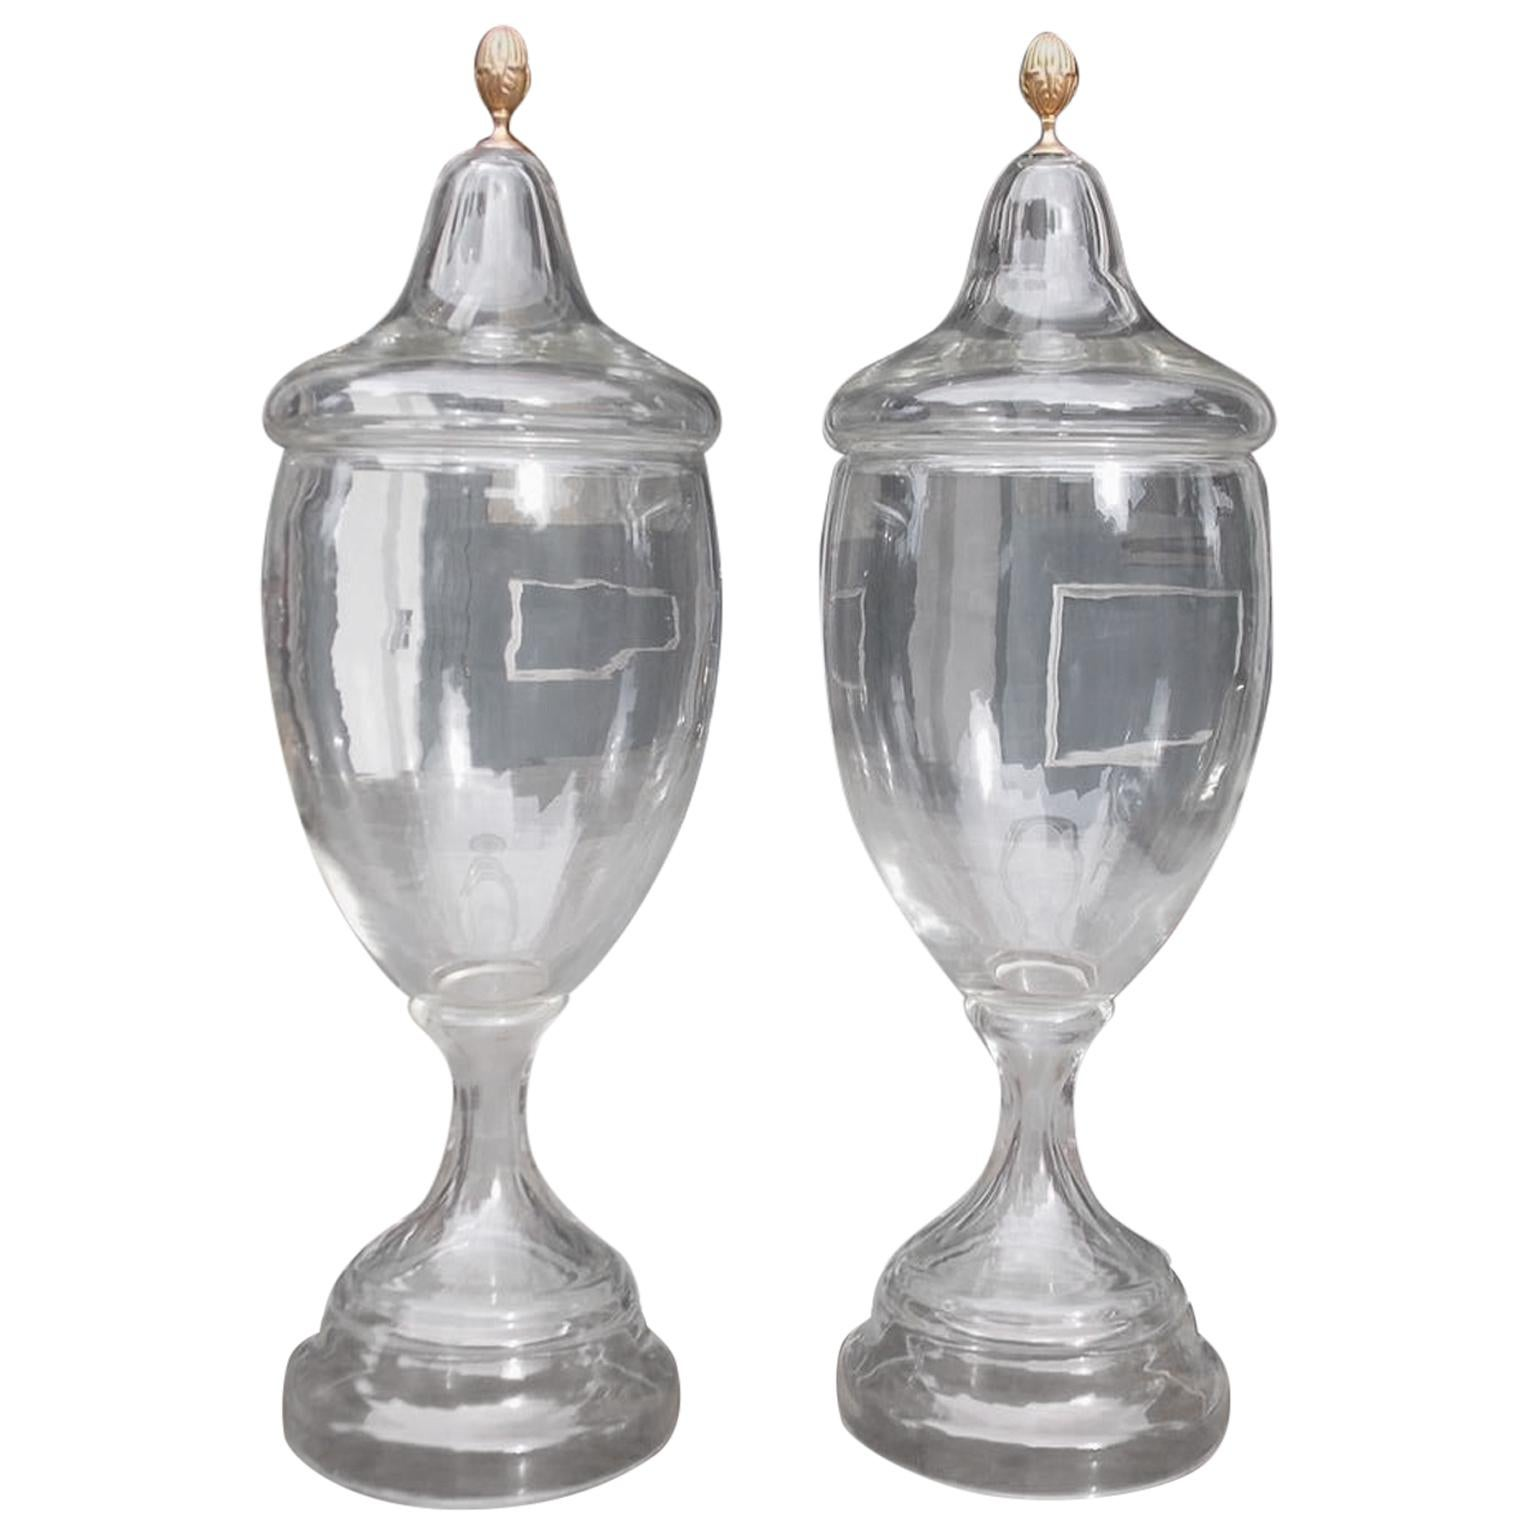 Pair of American Monumental Gilt Mount Hand Blown Apothecary Urns, Circa 1850